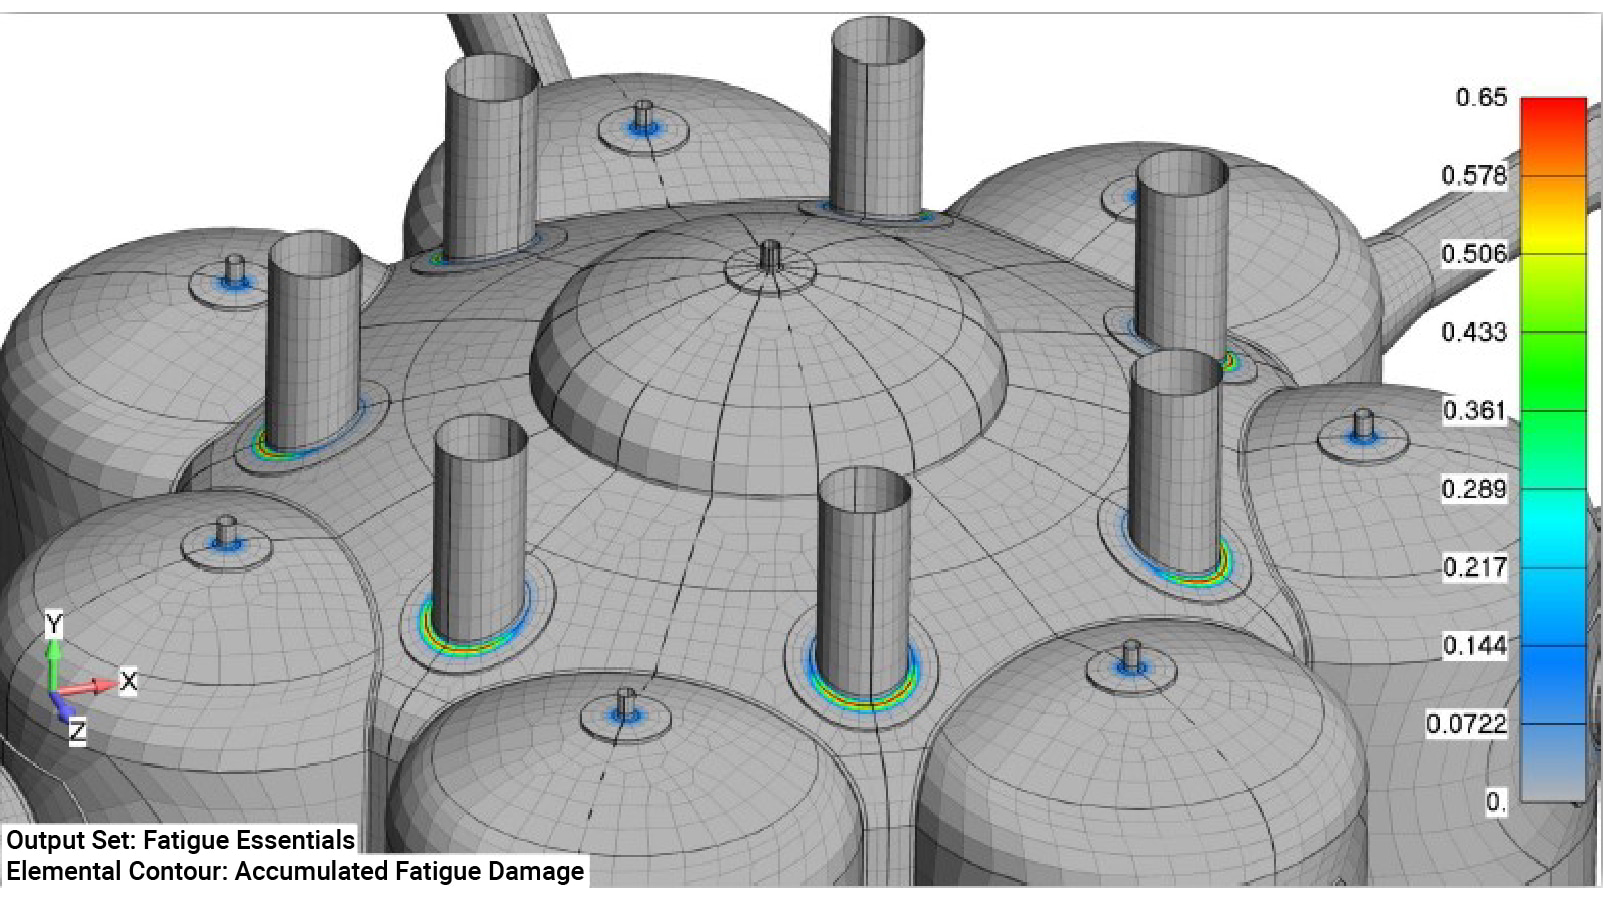 Fatigue essentials analysis for ASME pressure vessel consulting